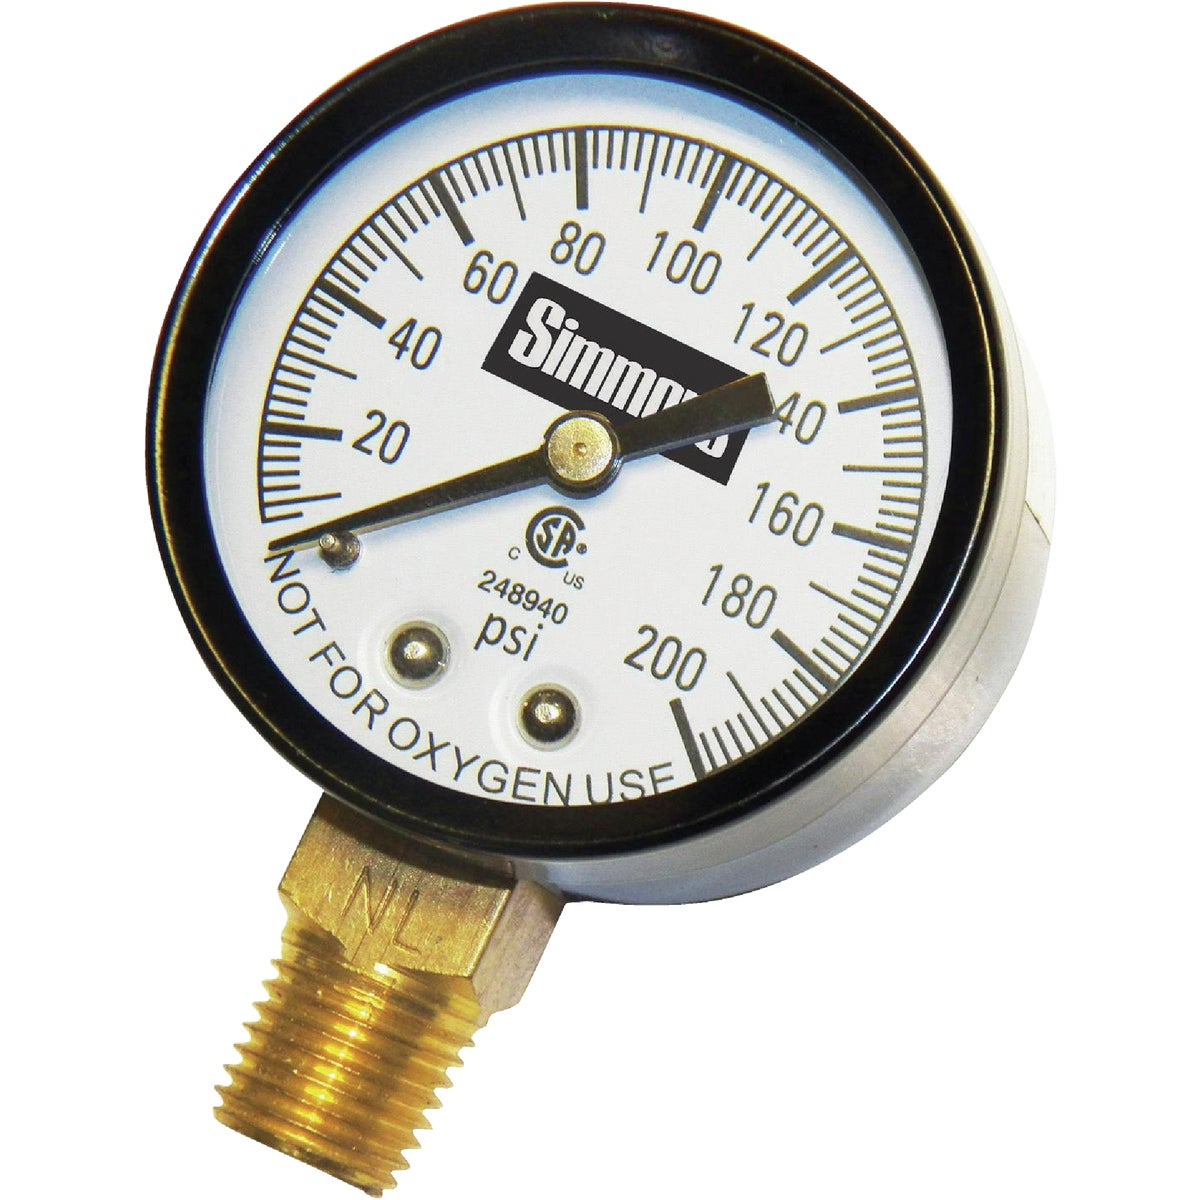 0-200 PRESSURE GAUGE - 66016-WYN by Wayne Water Systems